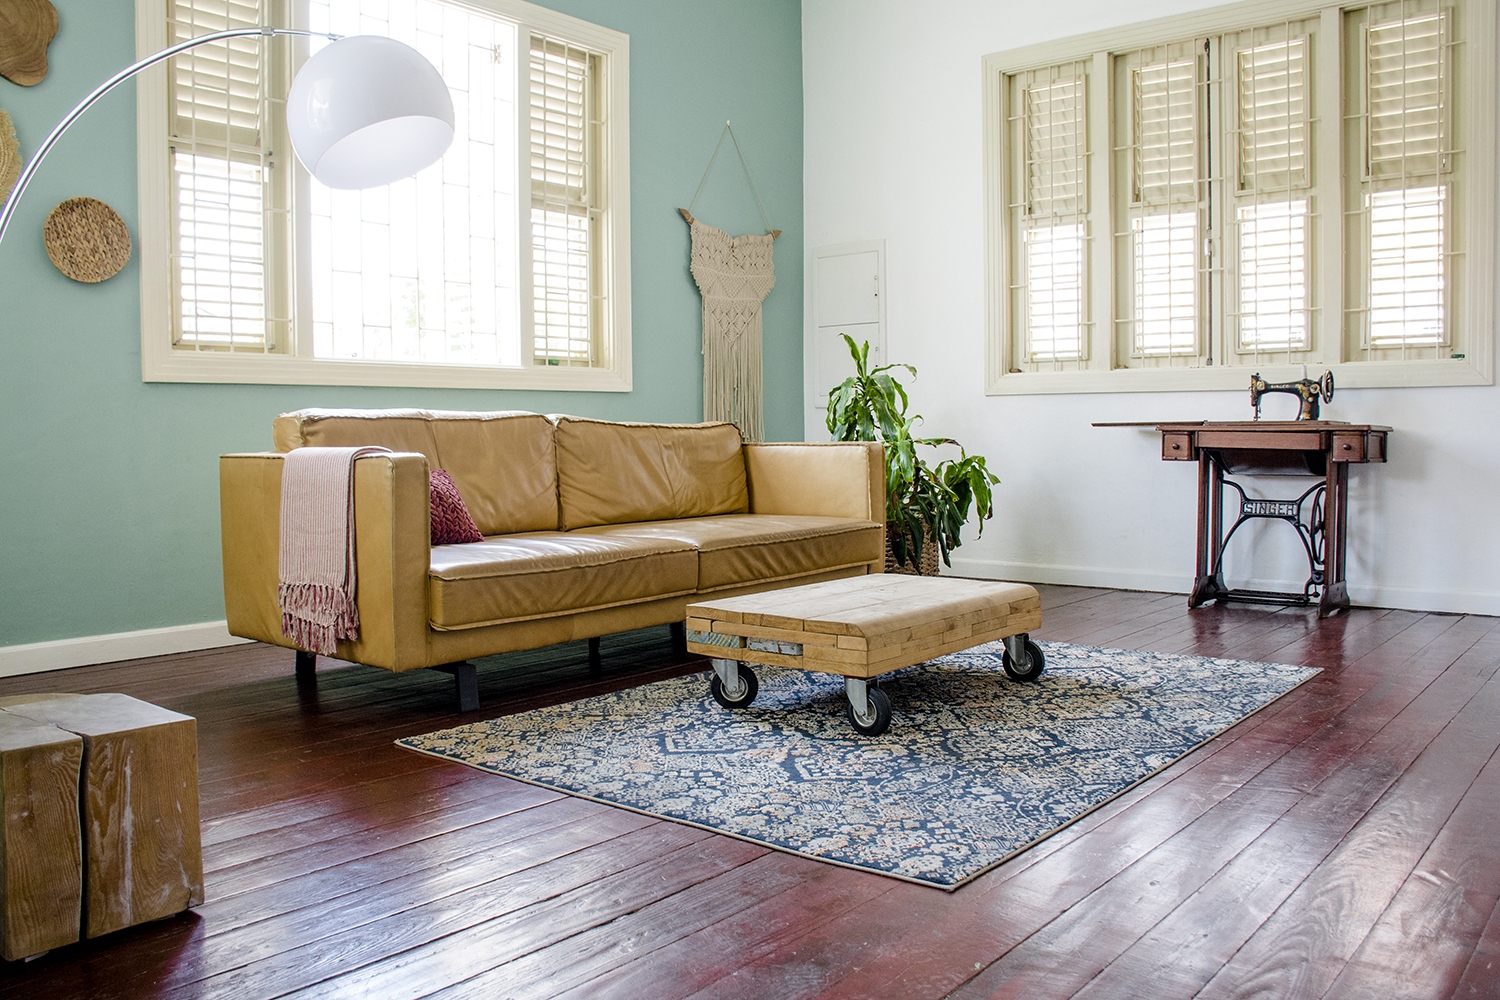 Enter a home where color is not a taboo